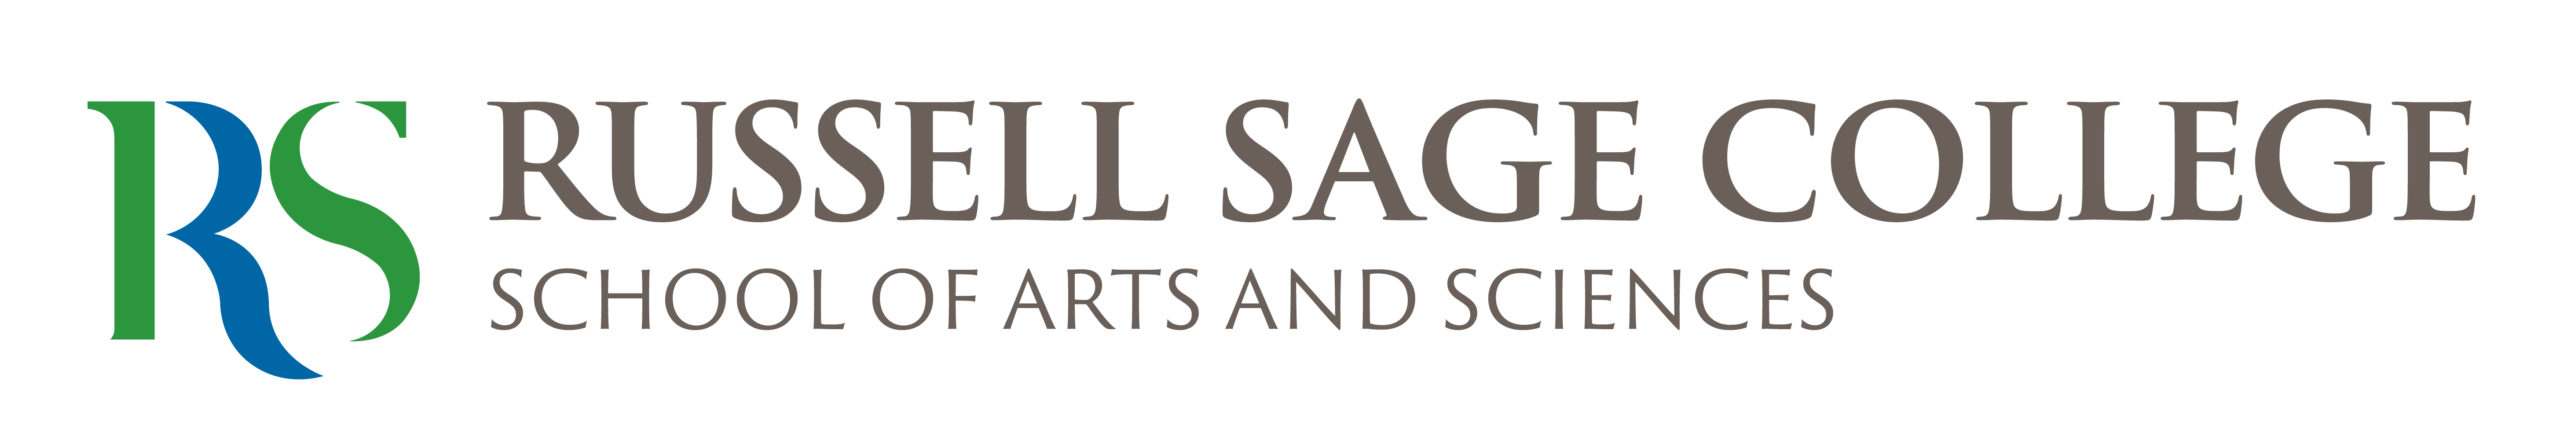 Russell Sage College School of Arts & Sciences [logo]